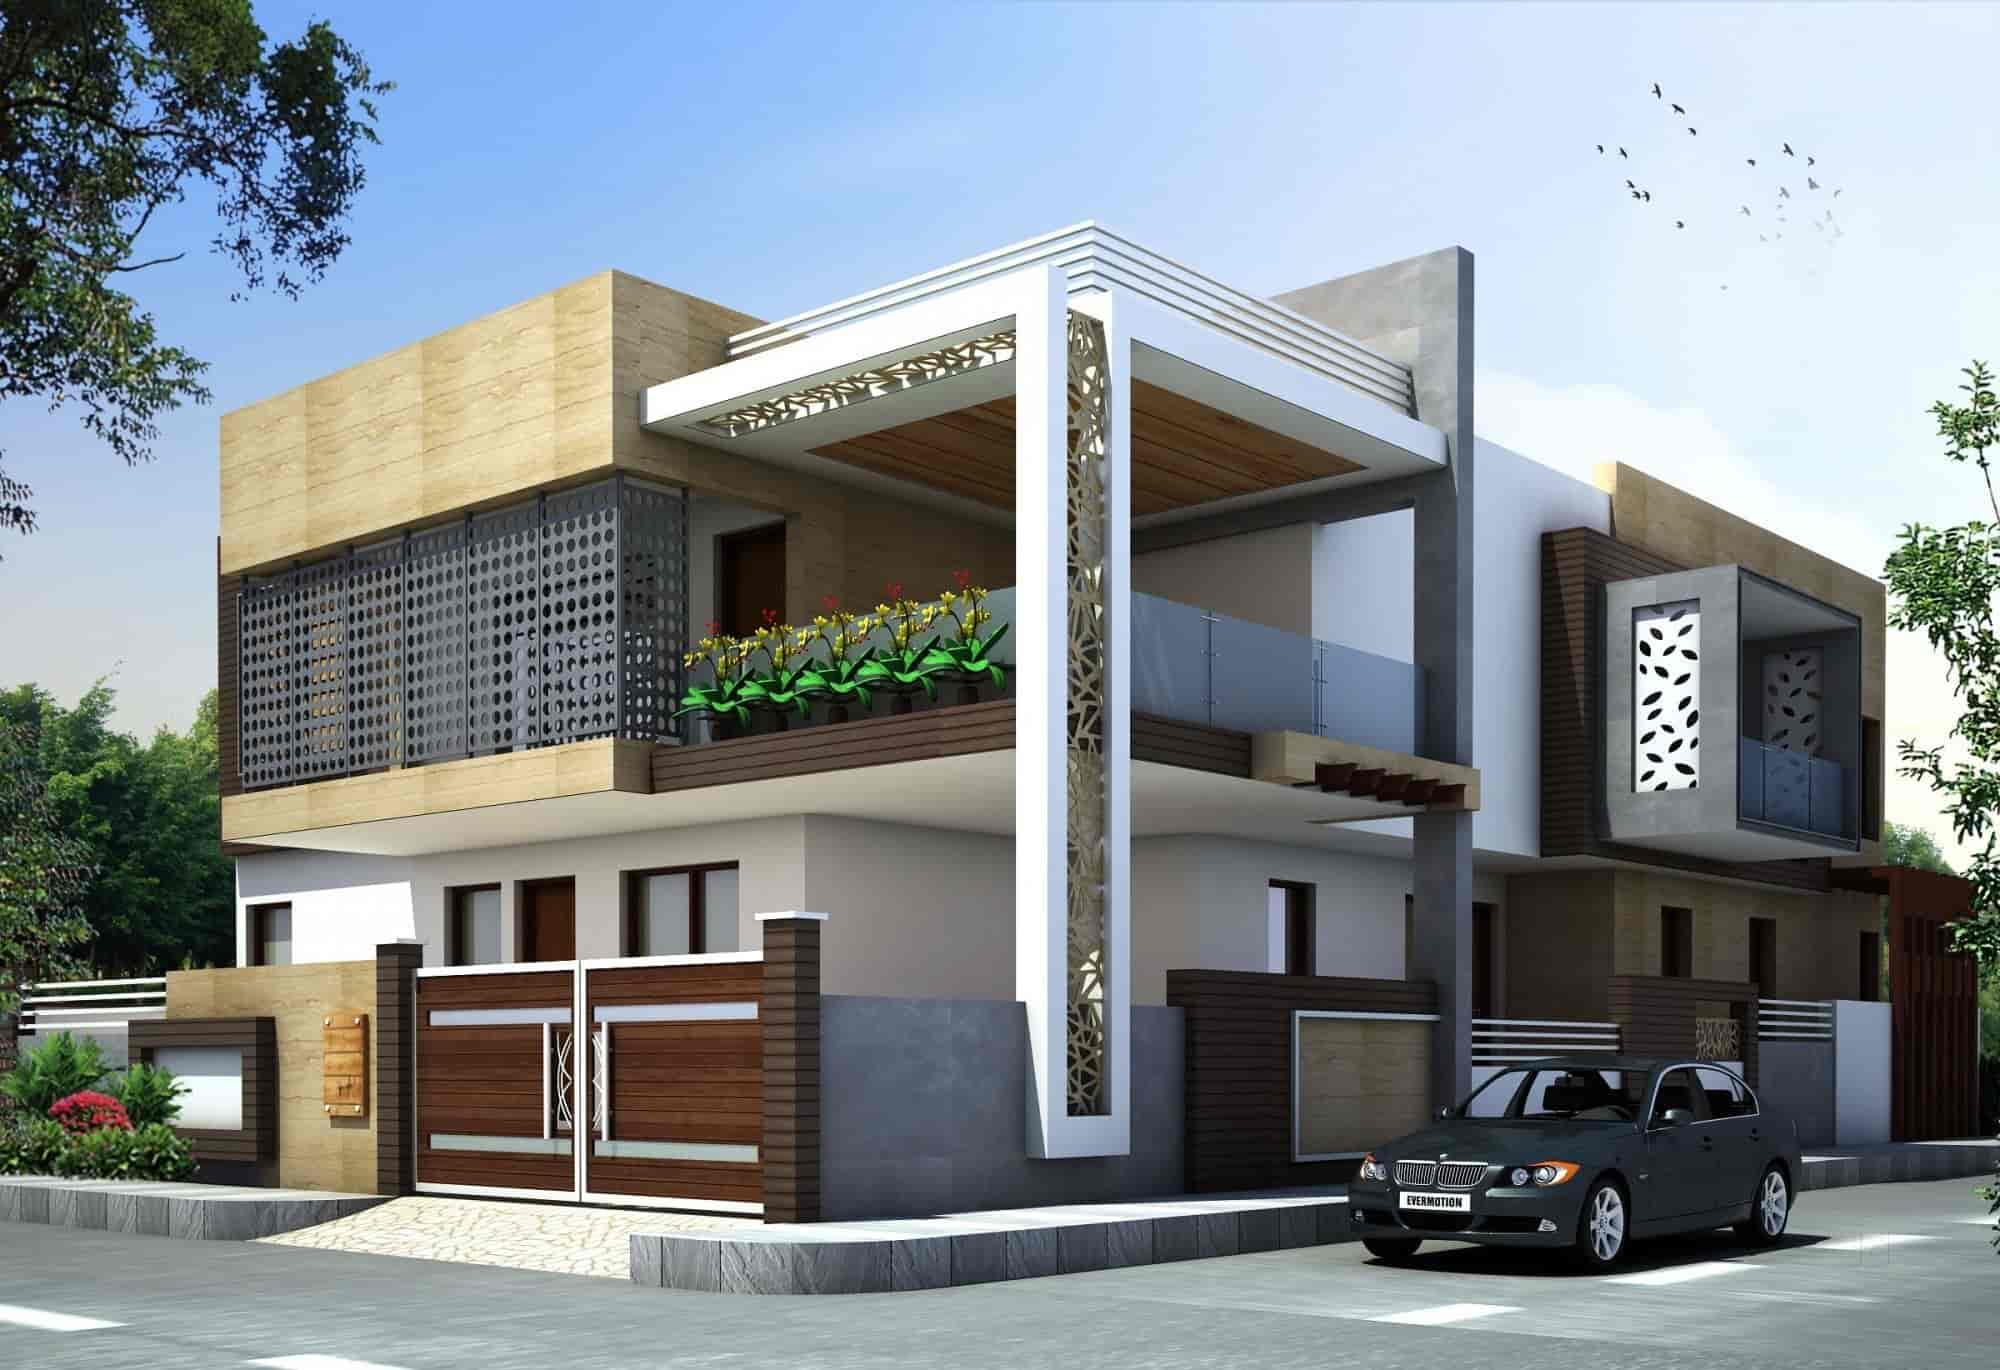 A K Architectural Works, Kishangarh - Architects in Ajmer - Justdial